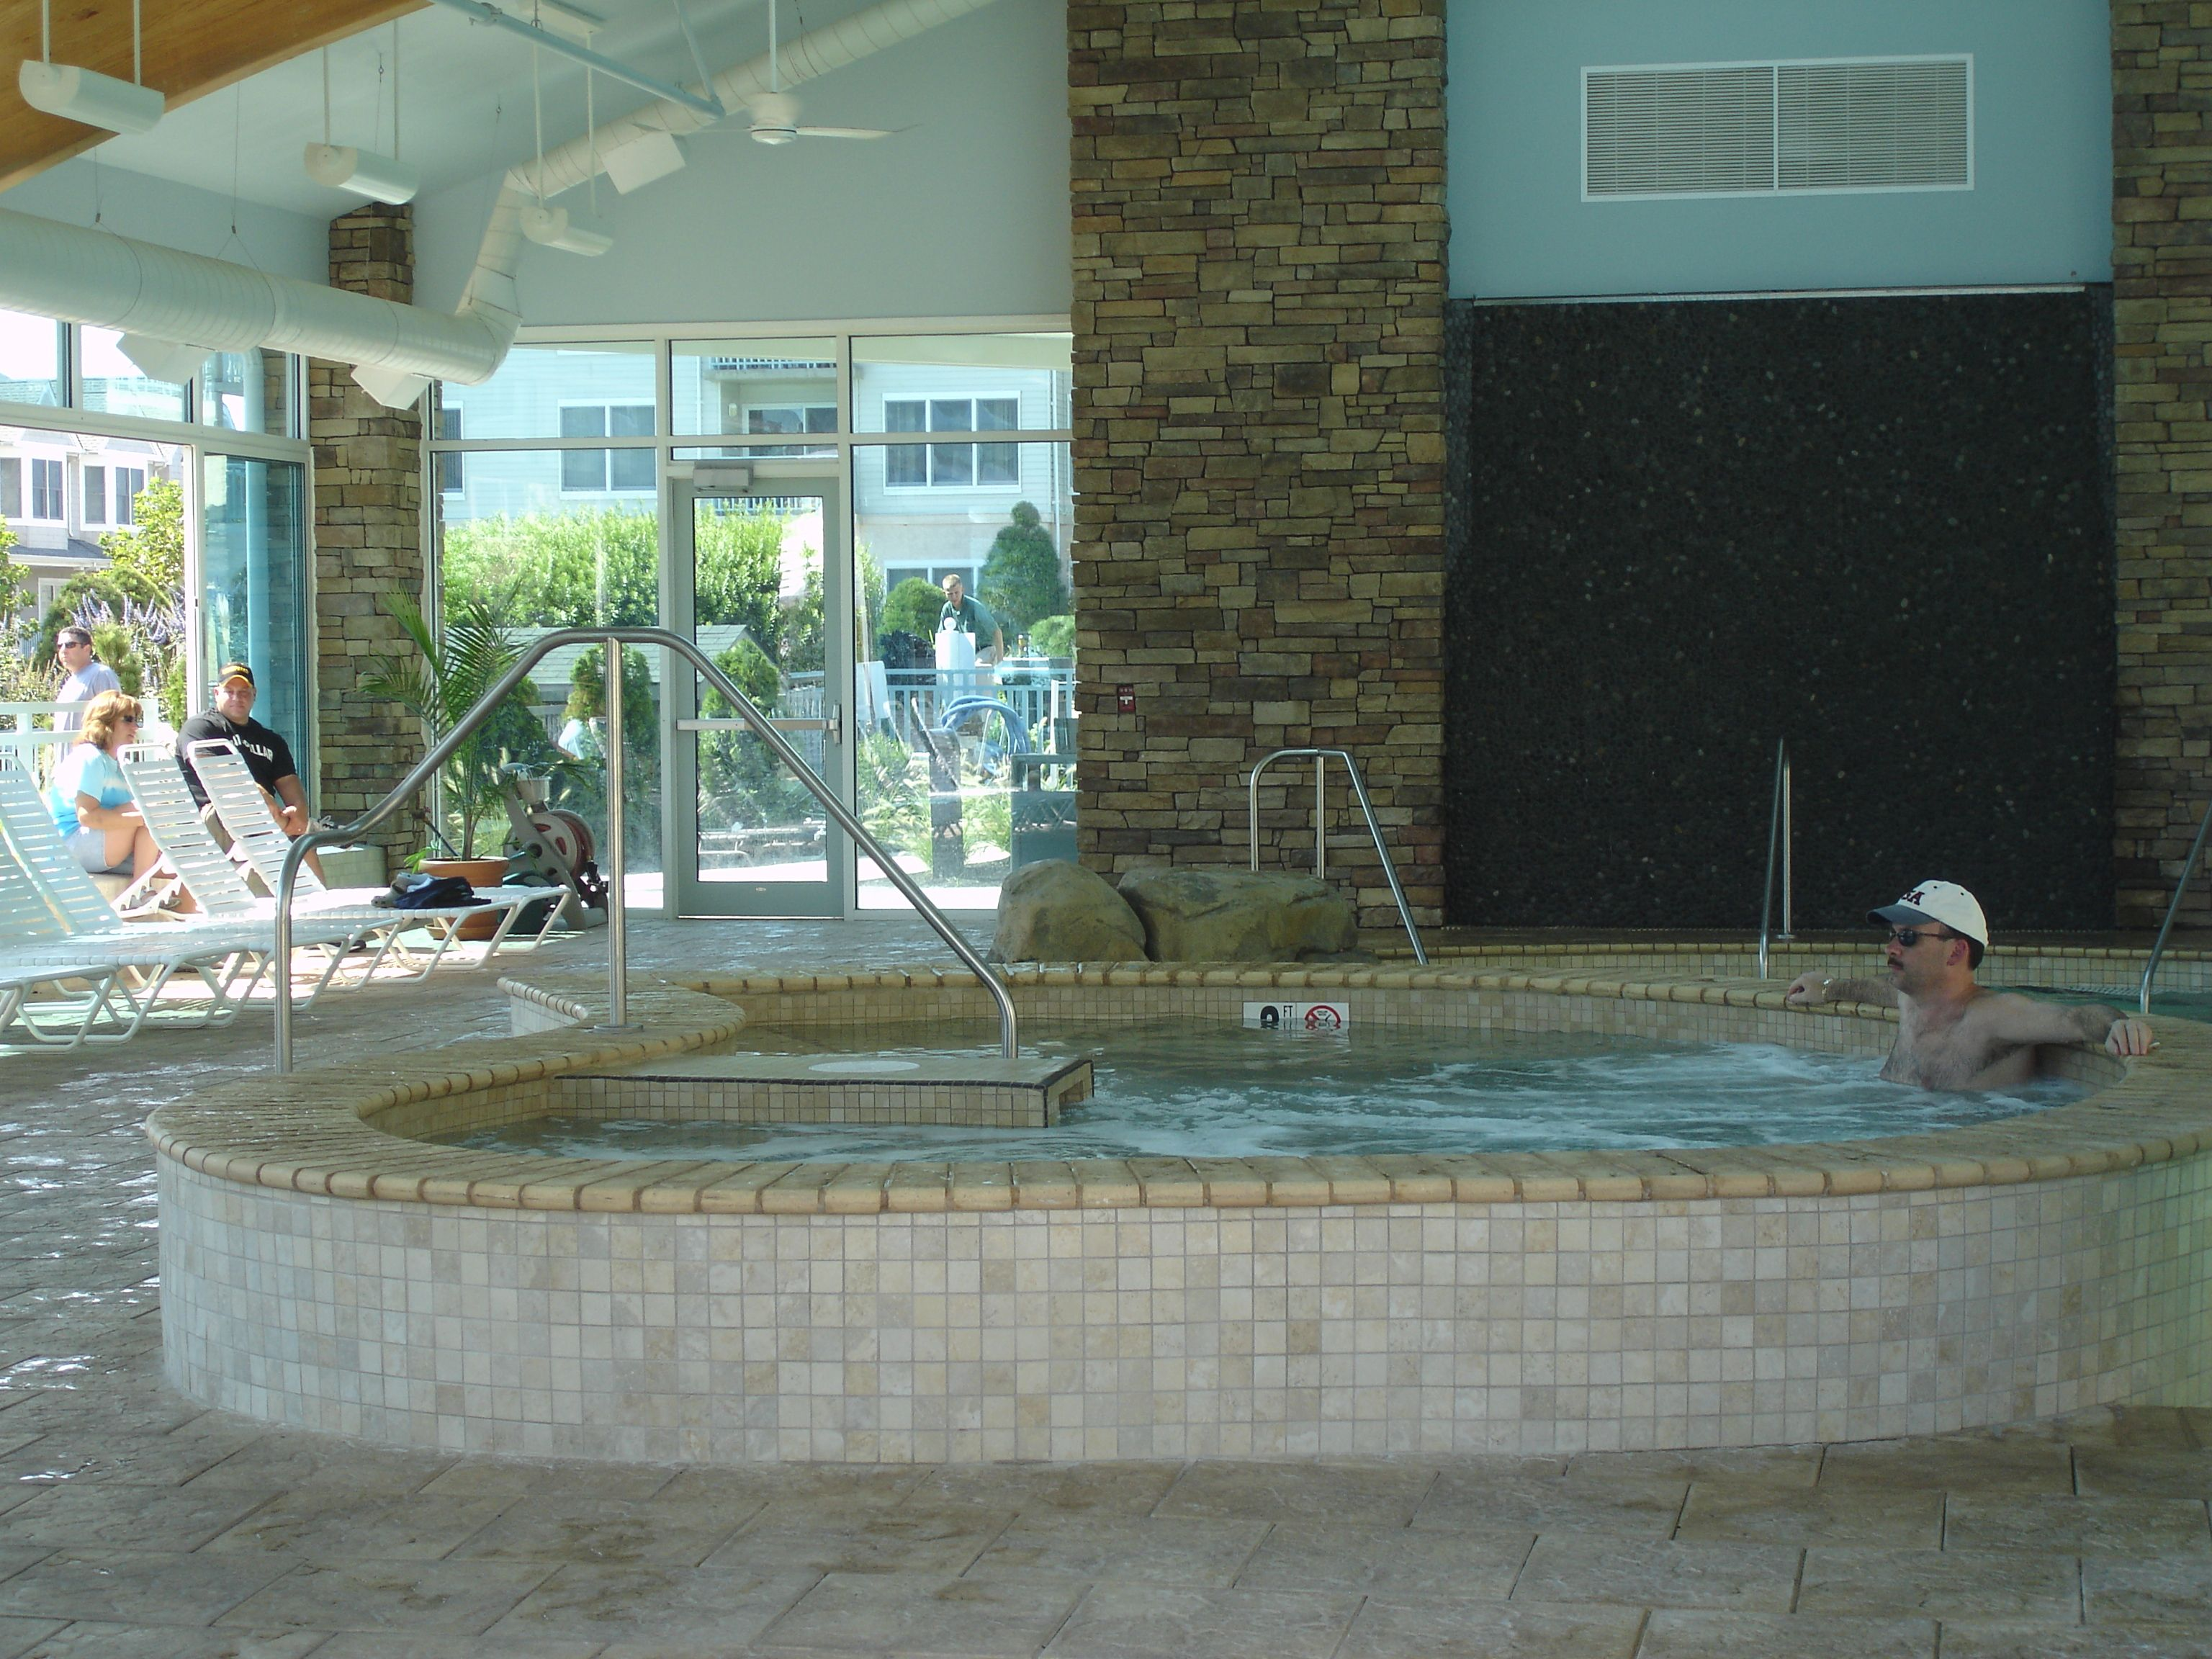 30 Seapointe Village Rentals By Owner Diamond Beach Wildwood Ideas Small Condo Baby Pool Wildwood